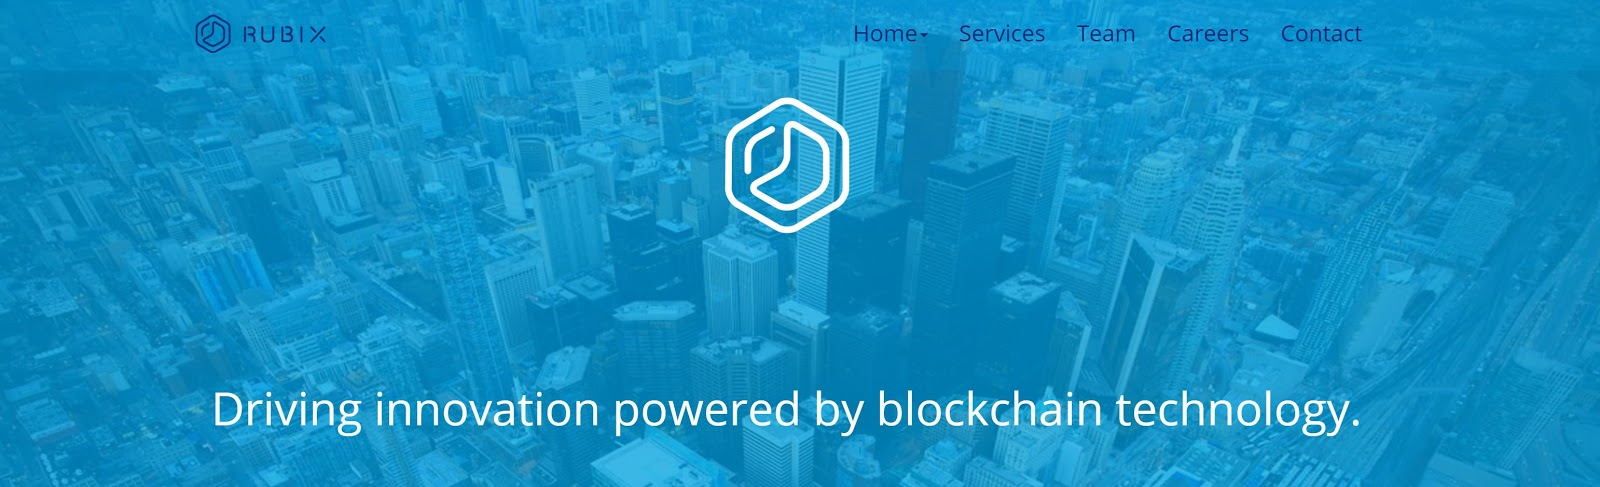 3 Companies Leading the Blockchain as a Service (BaaS) Revolution